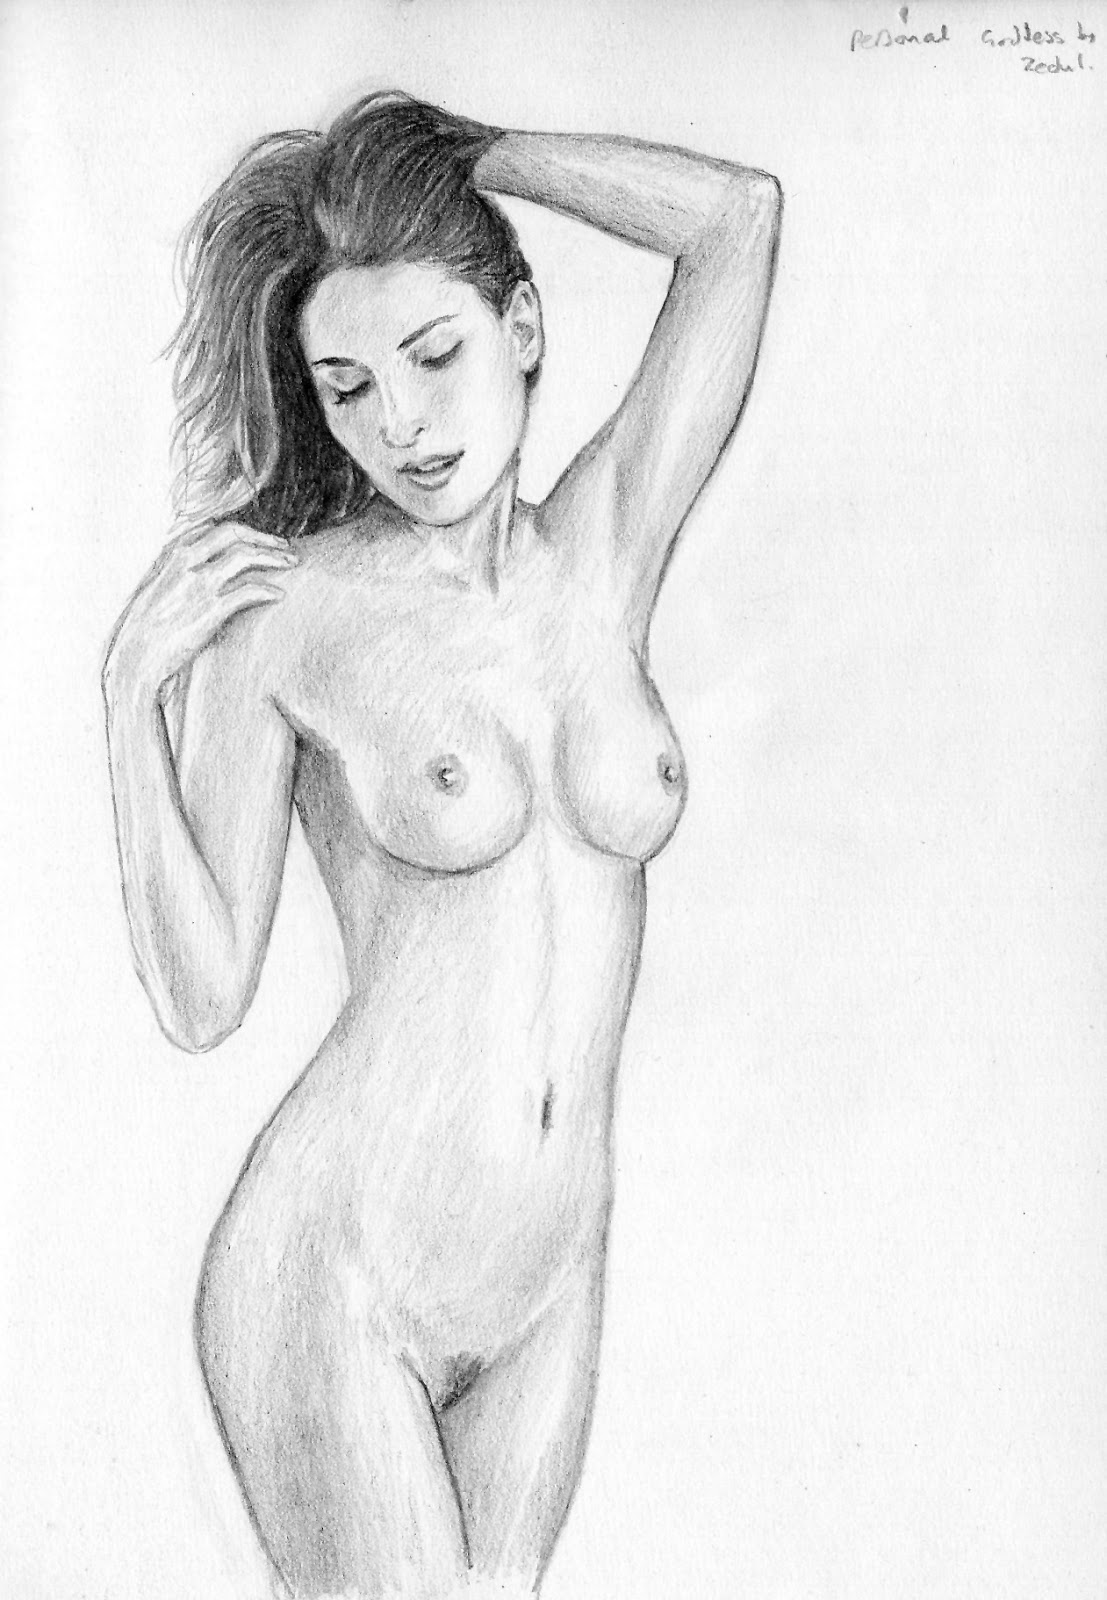 Hot girl drawings nude xxx image